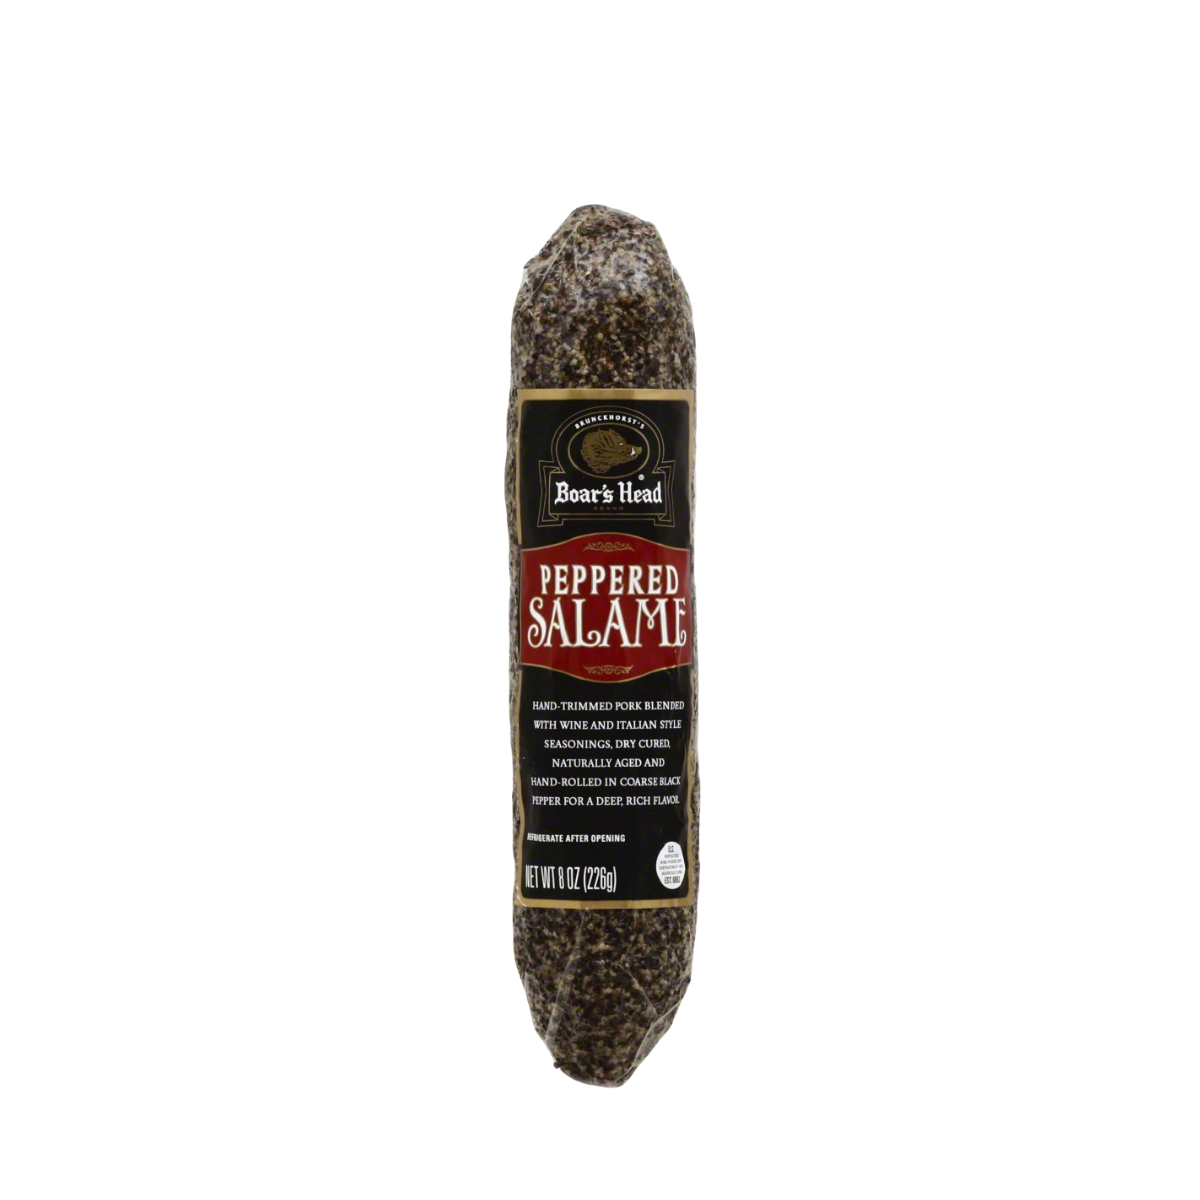 Boar's Head Uncured Peppered Salame